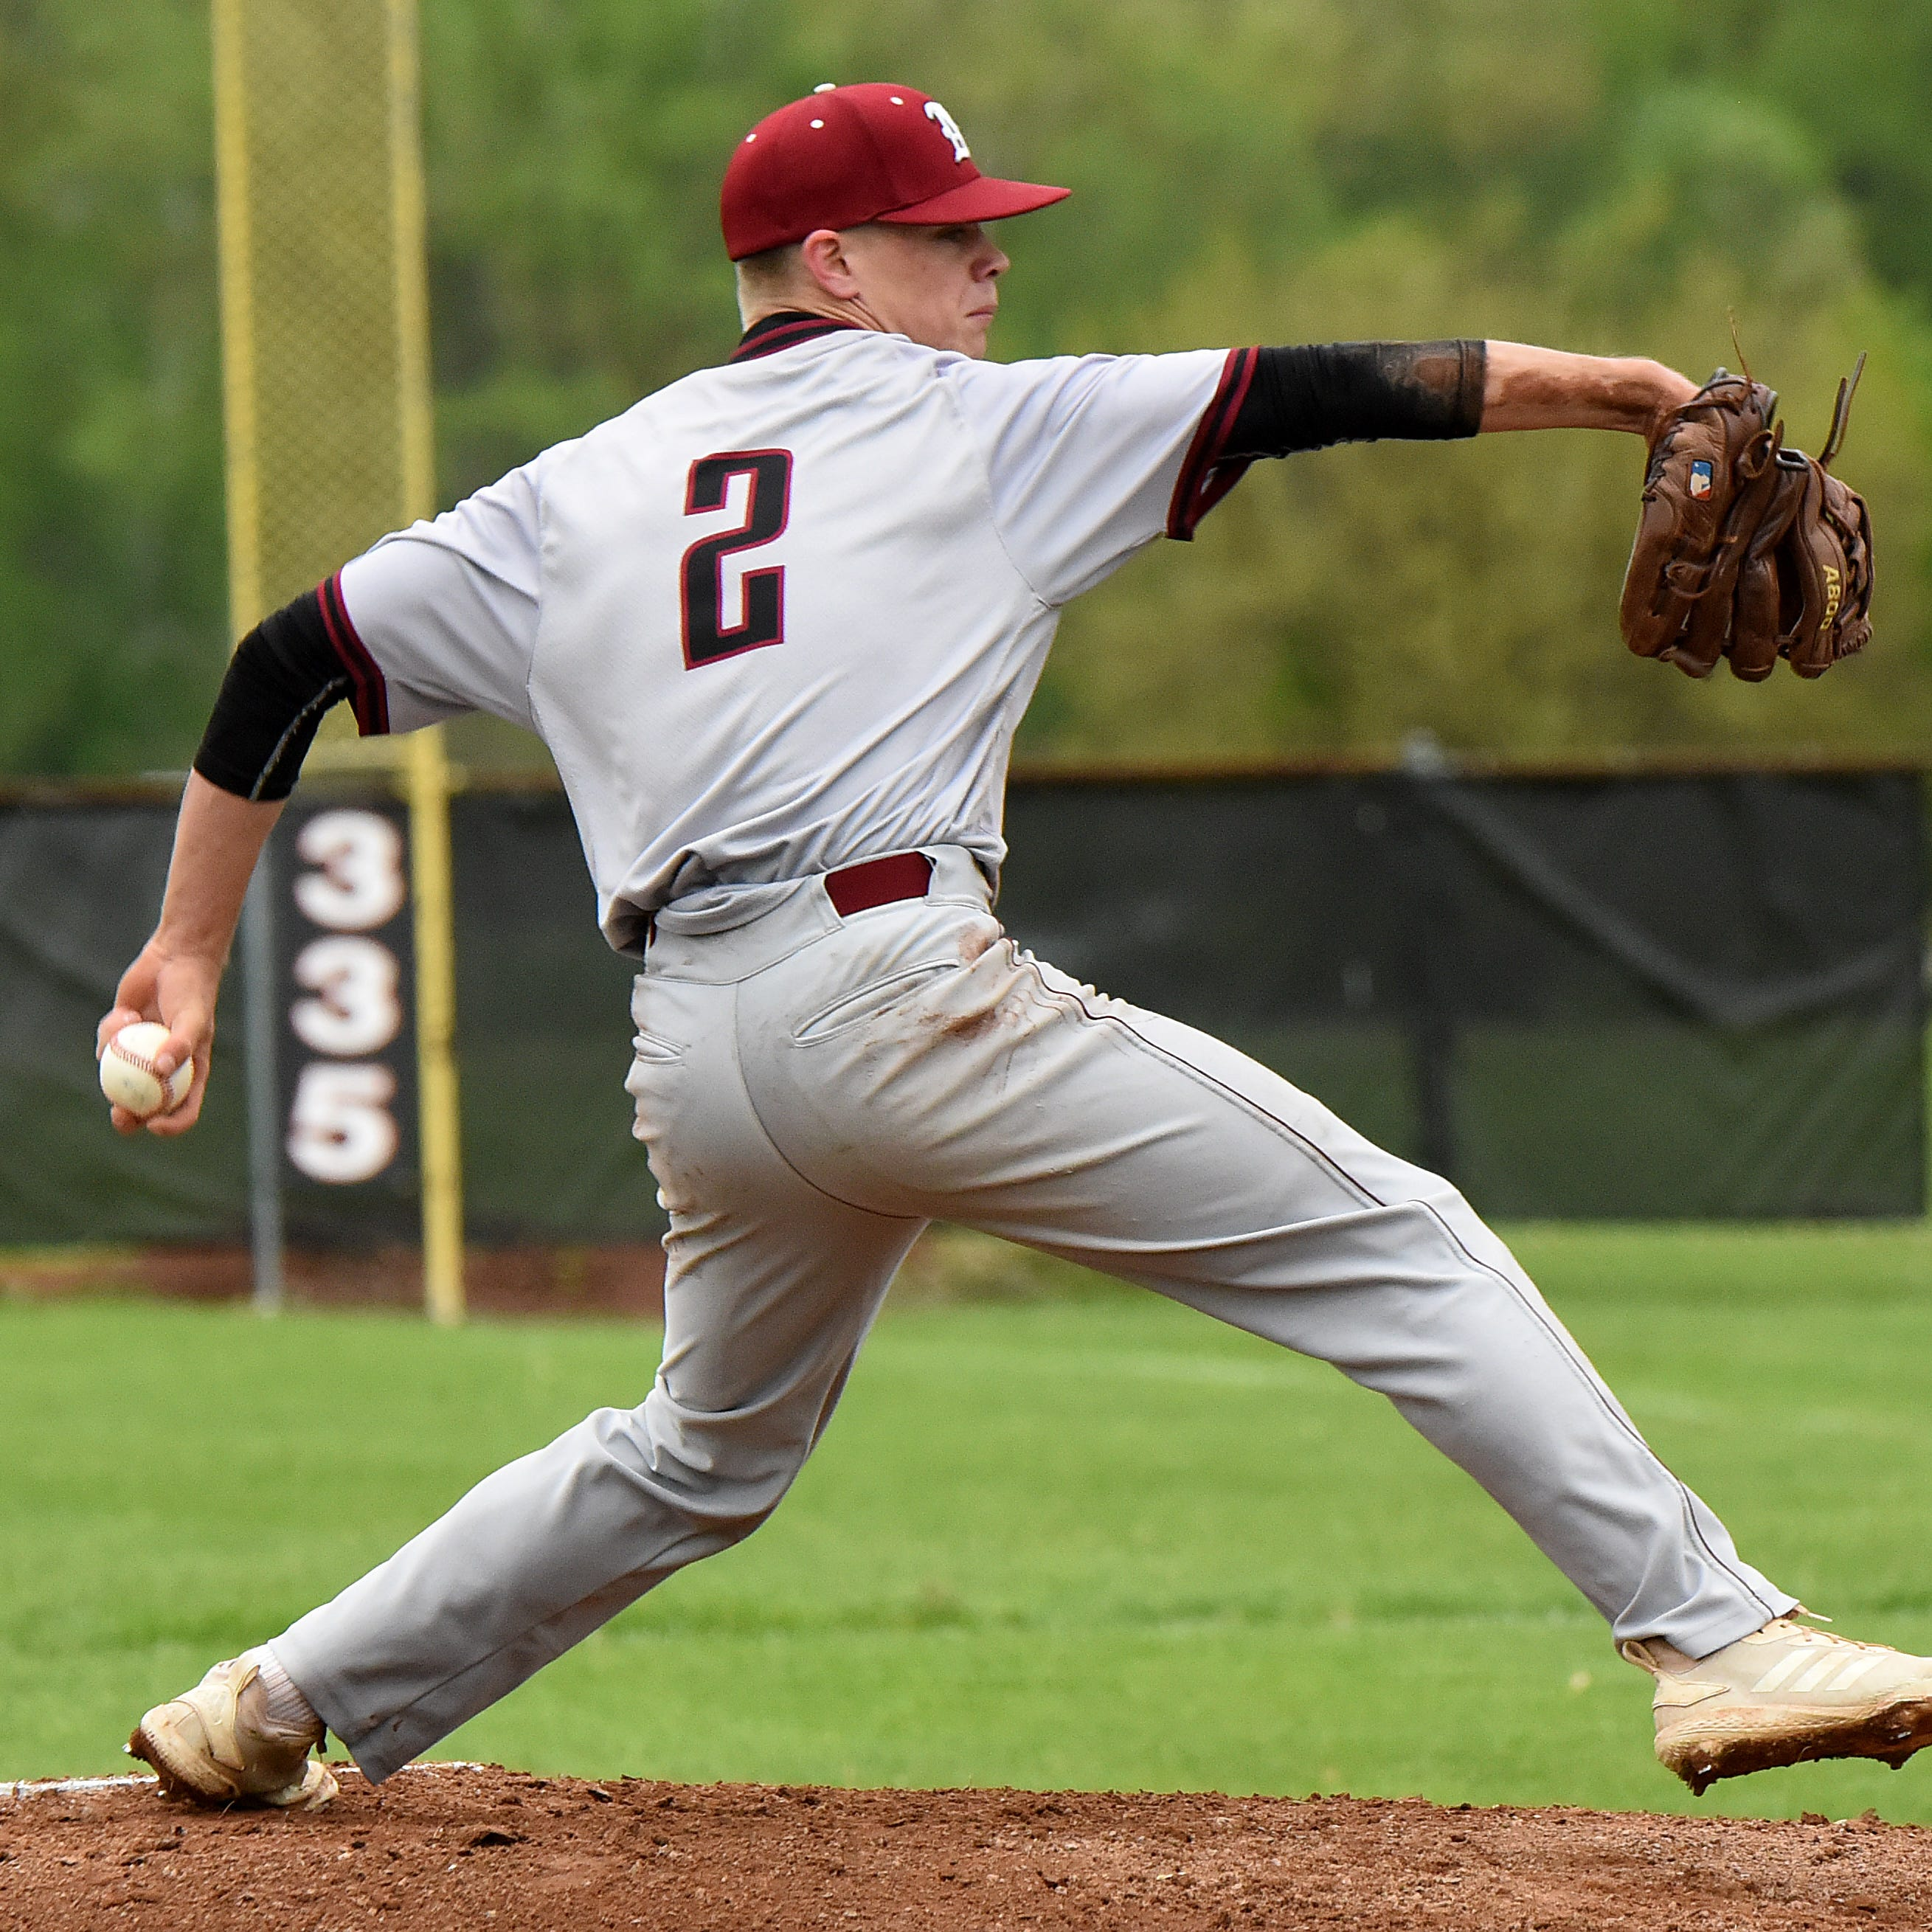 Newark baseball makes clutch plays late in first-round win